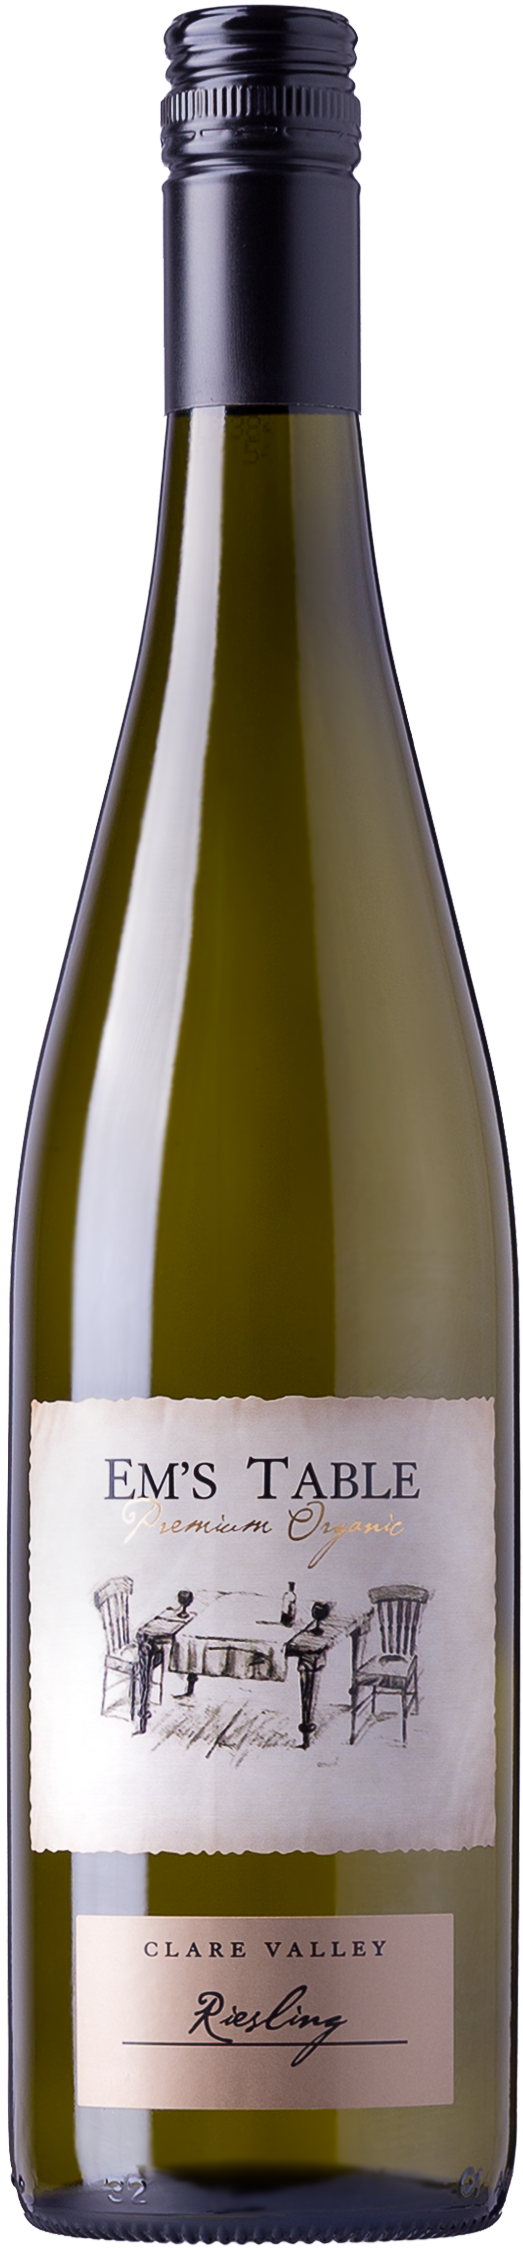 Em's Table Organic Riesling 2016-0